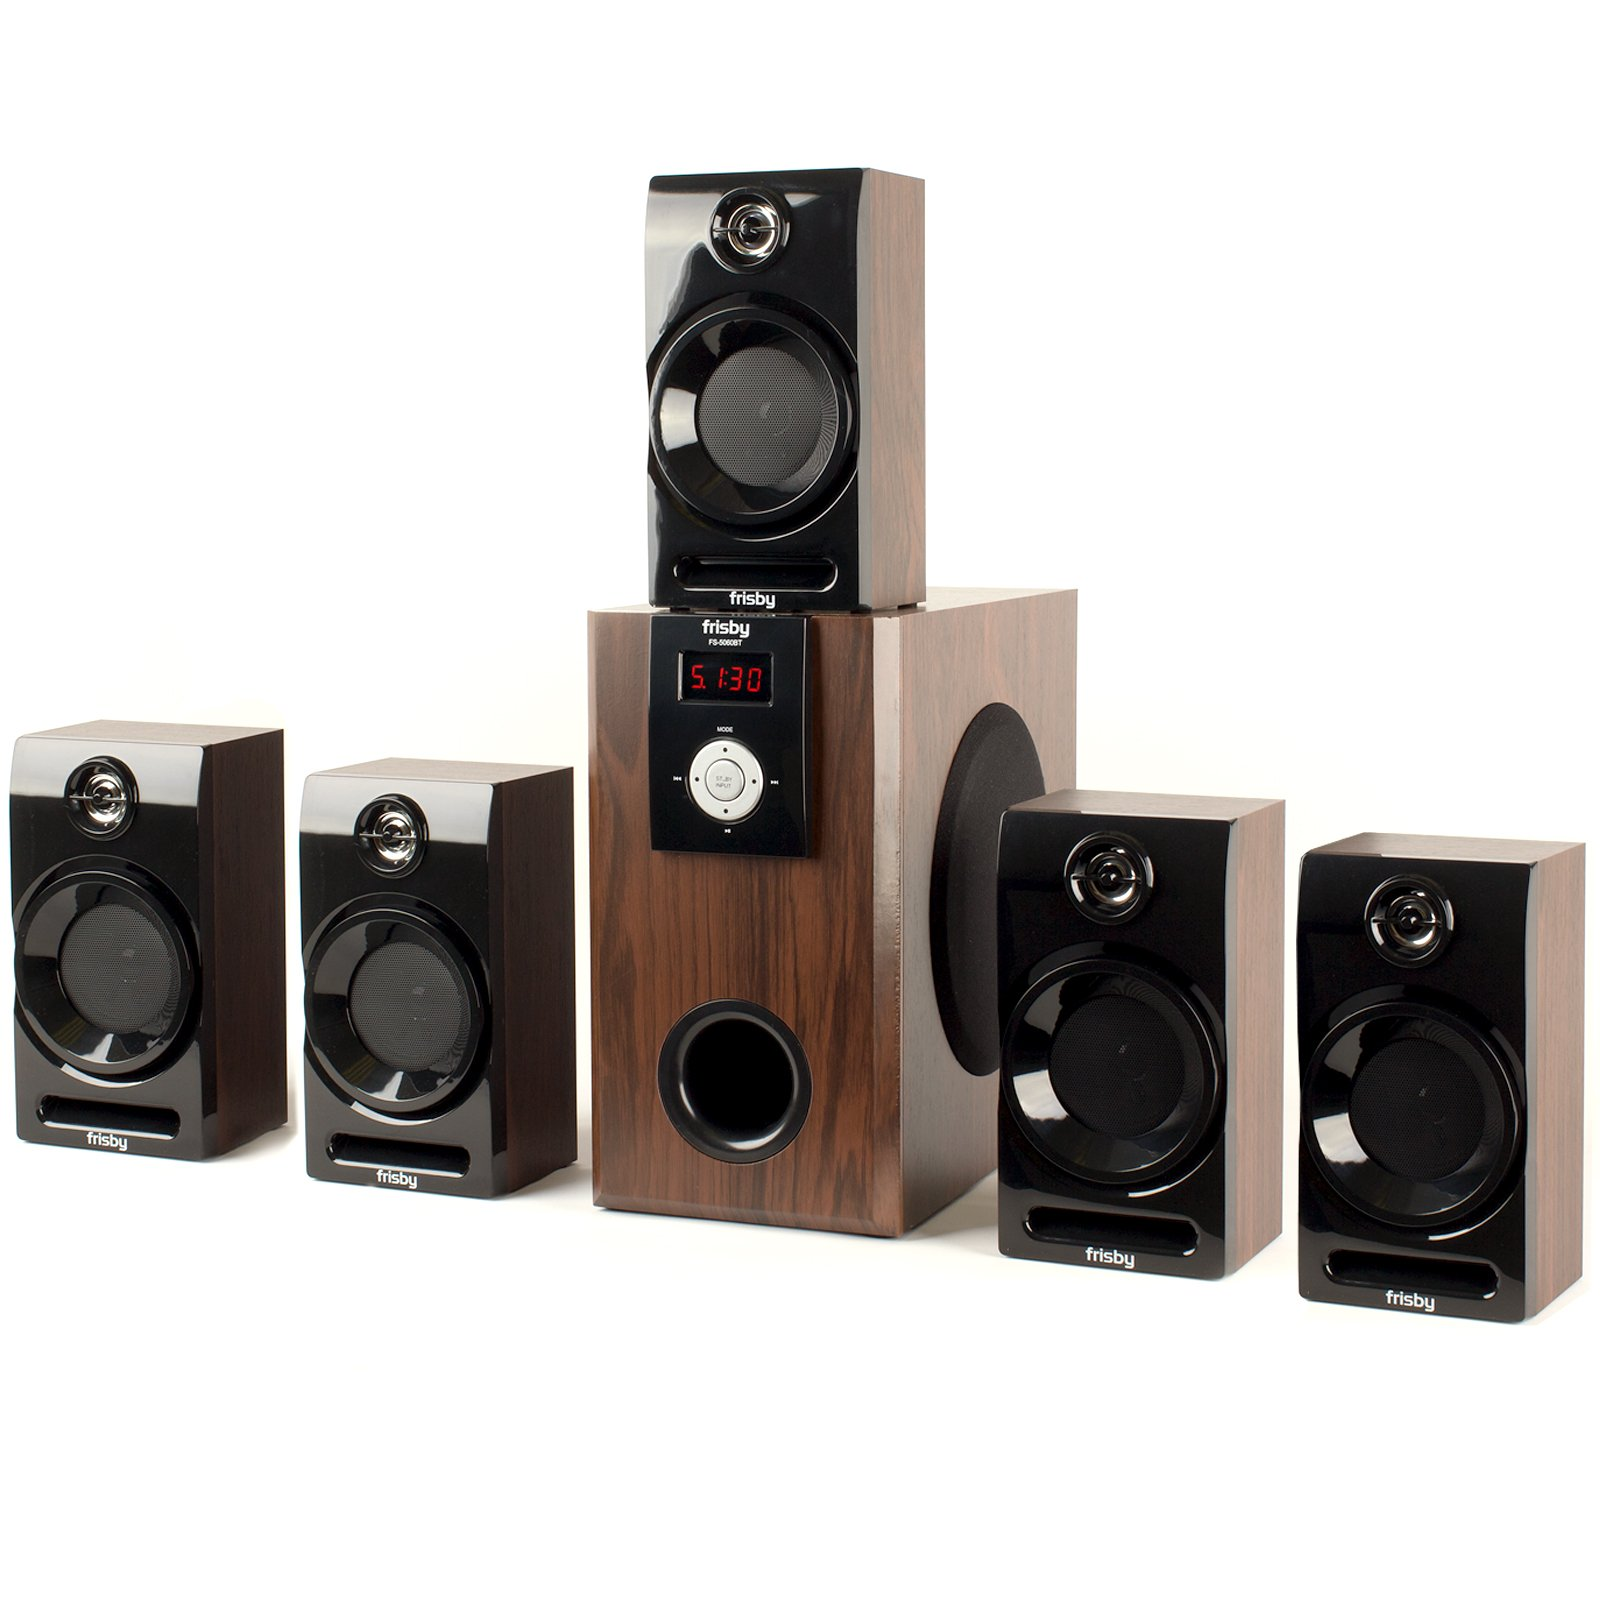 Frisby FS-5060BT 5.1 Surround Sound Home Theater Speakers System with Bluetooth USB/SD and Remote